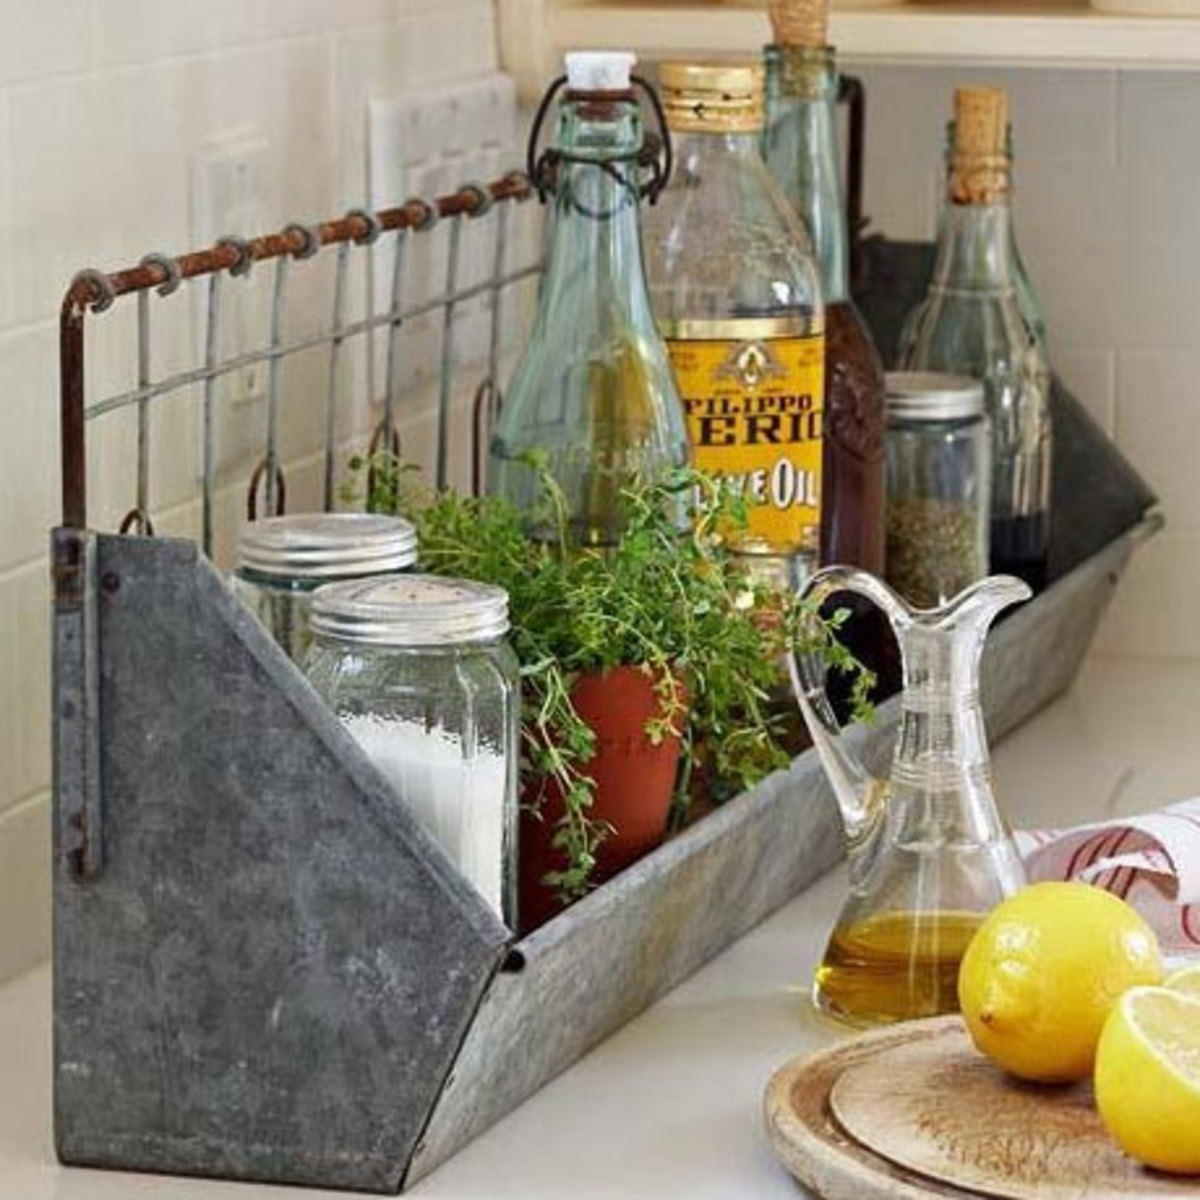 Chicken Feeder Storage for Oil and Vinegar   Easy Organization Ideas for the Home